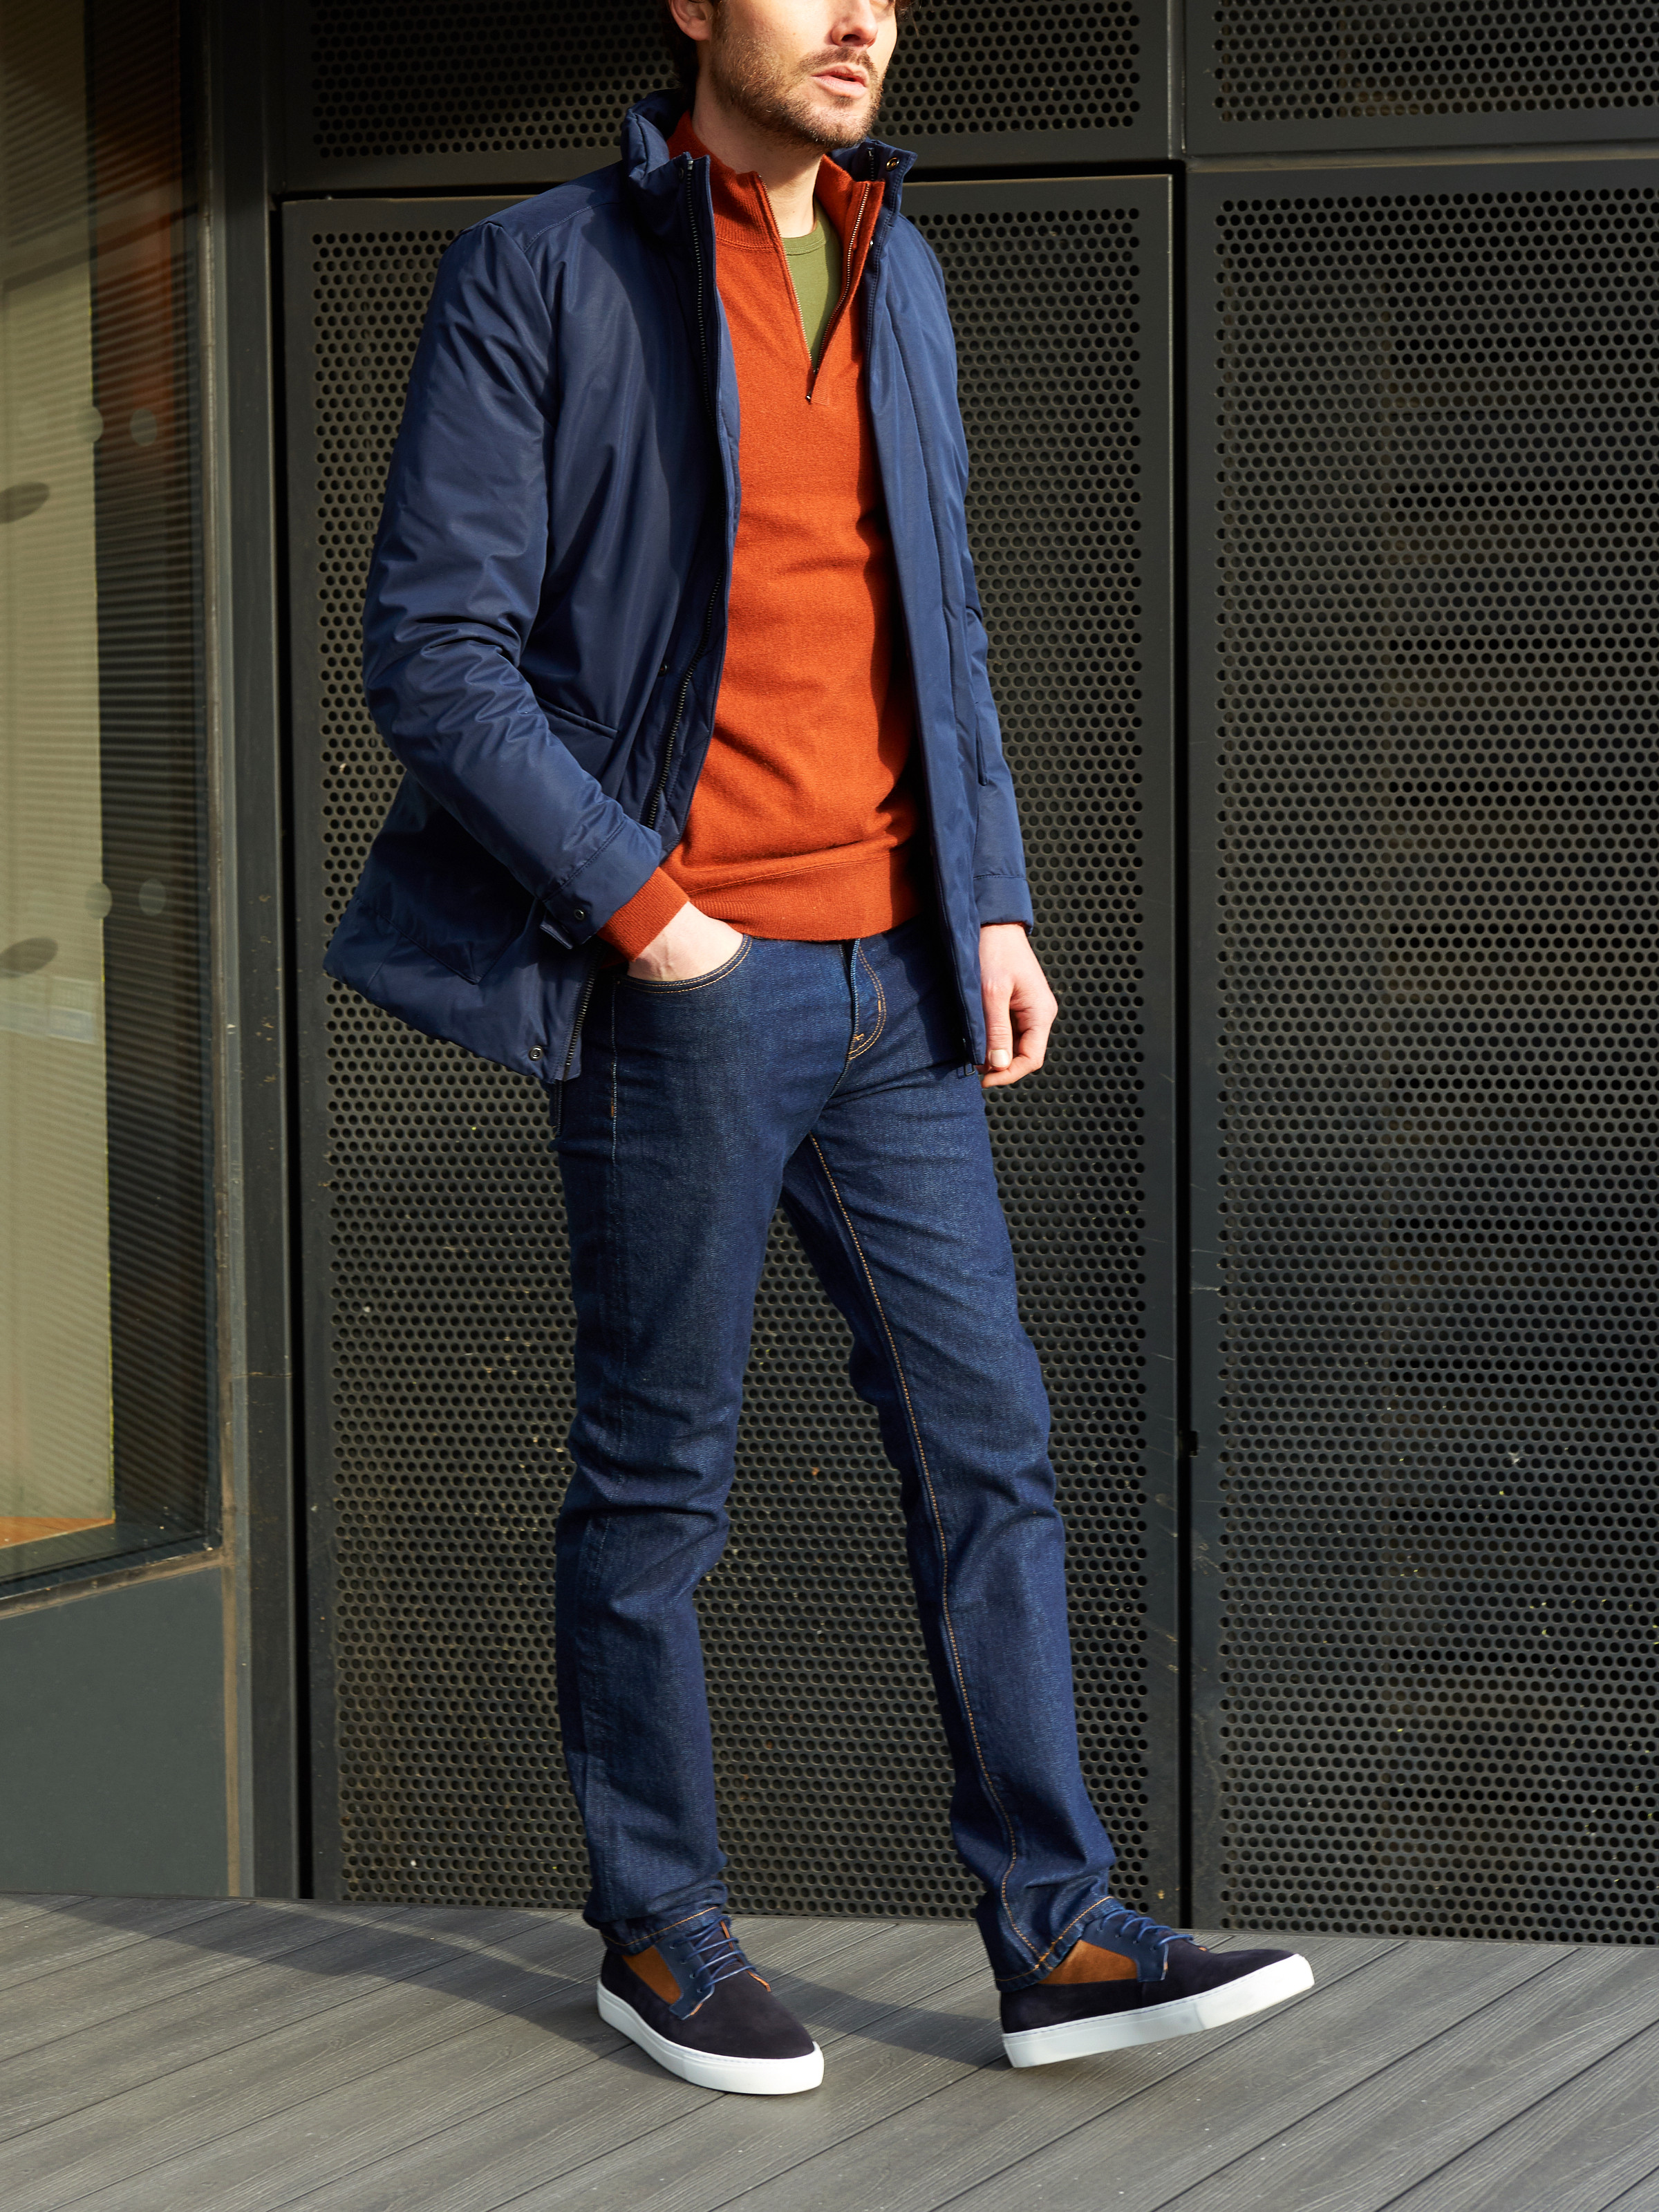 Men's outfit idea for 2021 with waterproof jacket / windbreaker, half-zip / half-button sweater, bold-colored crew neck t-shirt, dark blue jeans, neutral sneakers. Suitable for fall and winter.